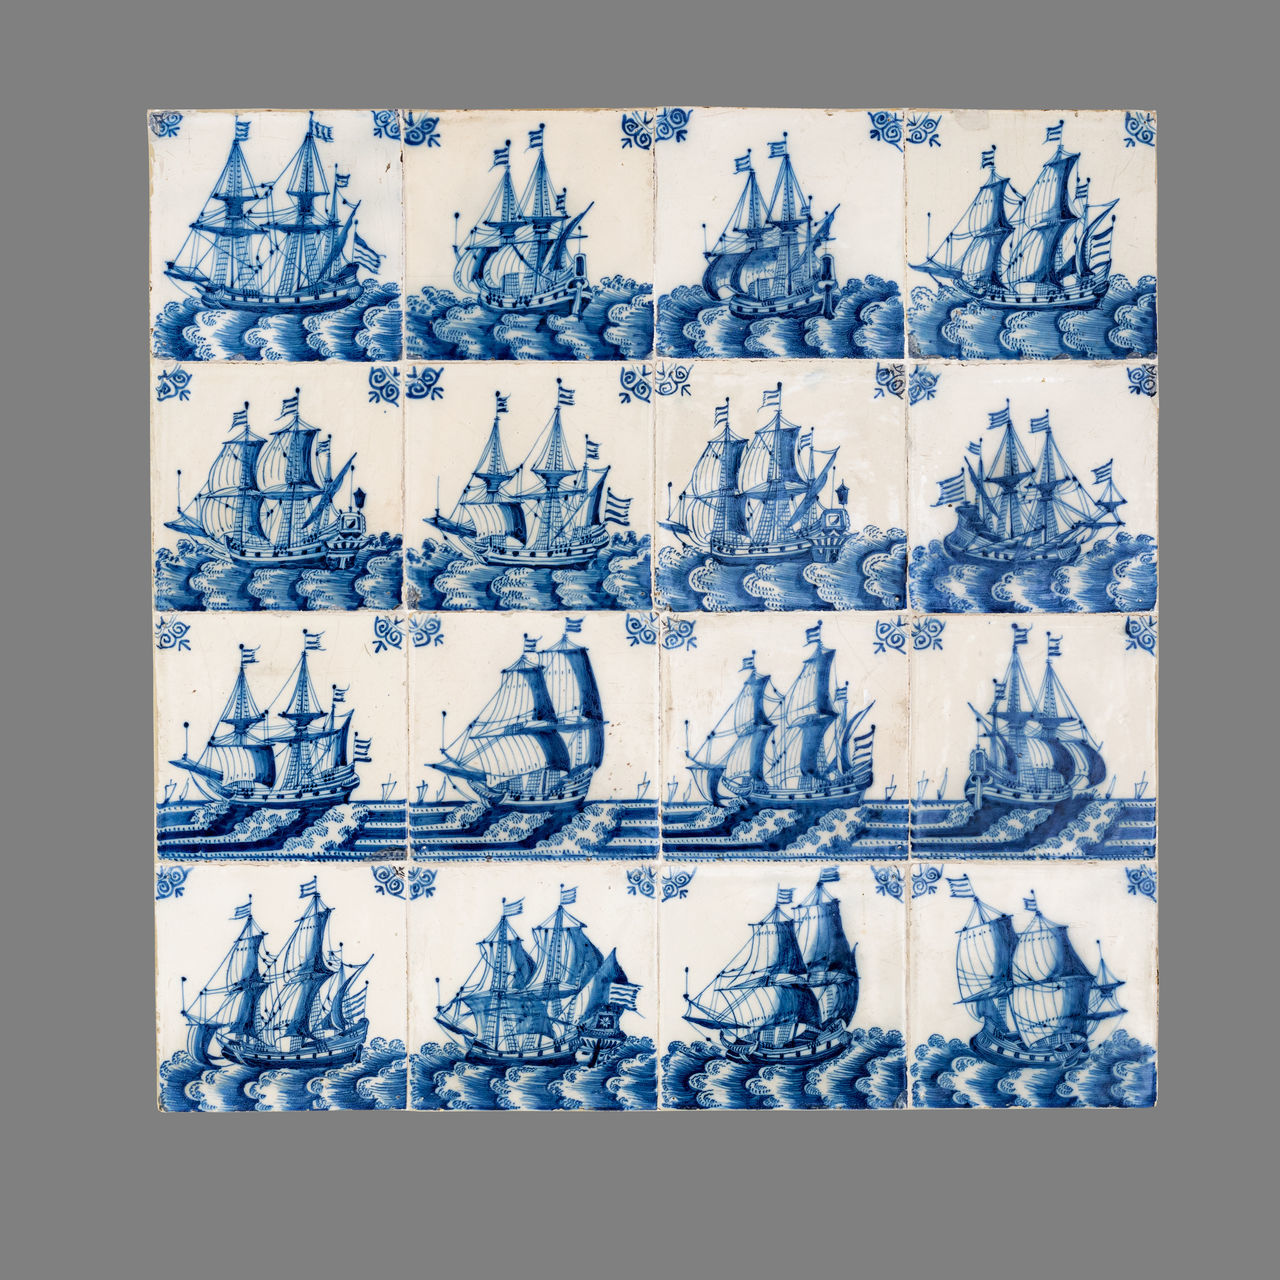 16th Century 17th Century 18th Century Ceramics Close-up Collage Day In A Row Indoors  Large Group Of Objects Multiple Image Netherlands No People Ship Tile Variation Vessel